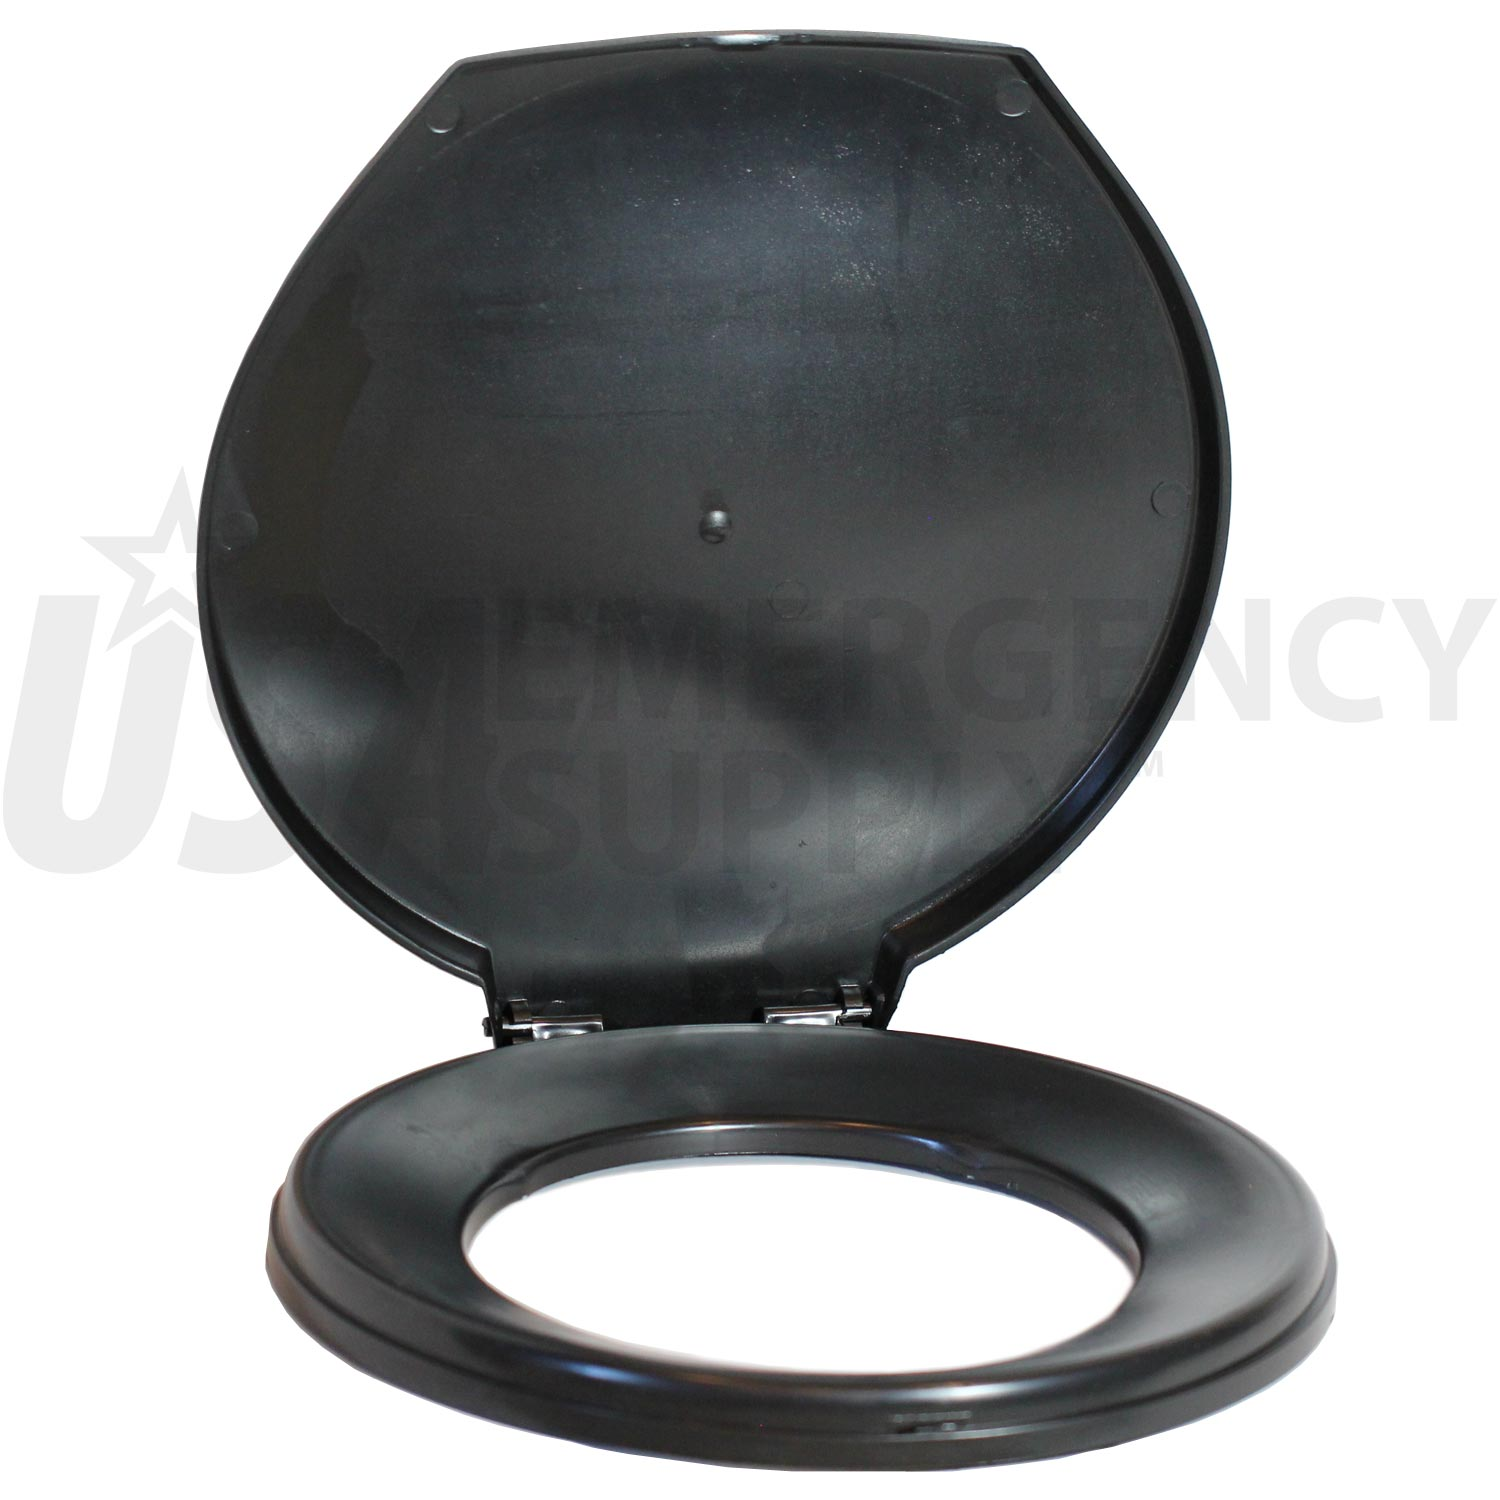 Toilet Seat For 5 Gallon Bucket | USA Emergency Supply